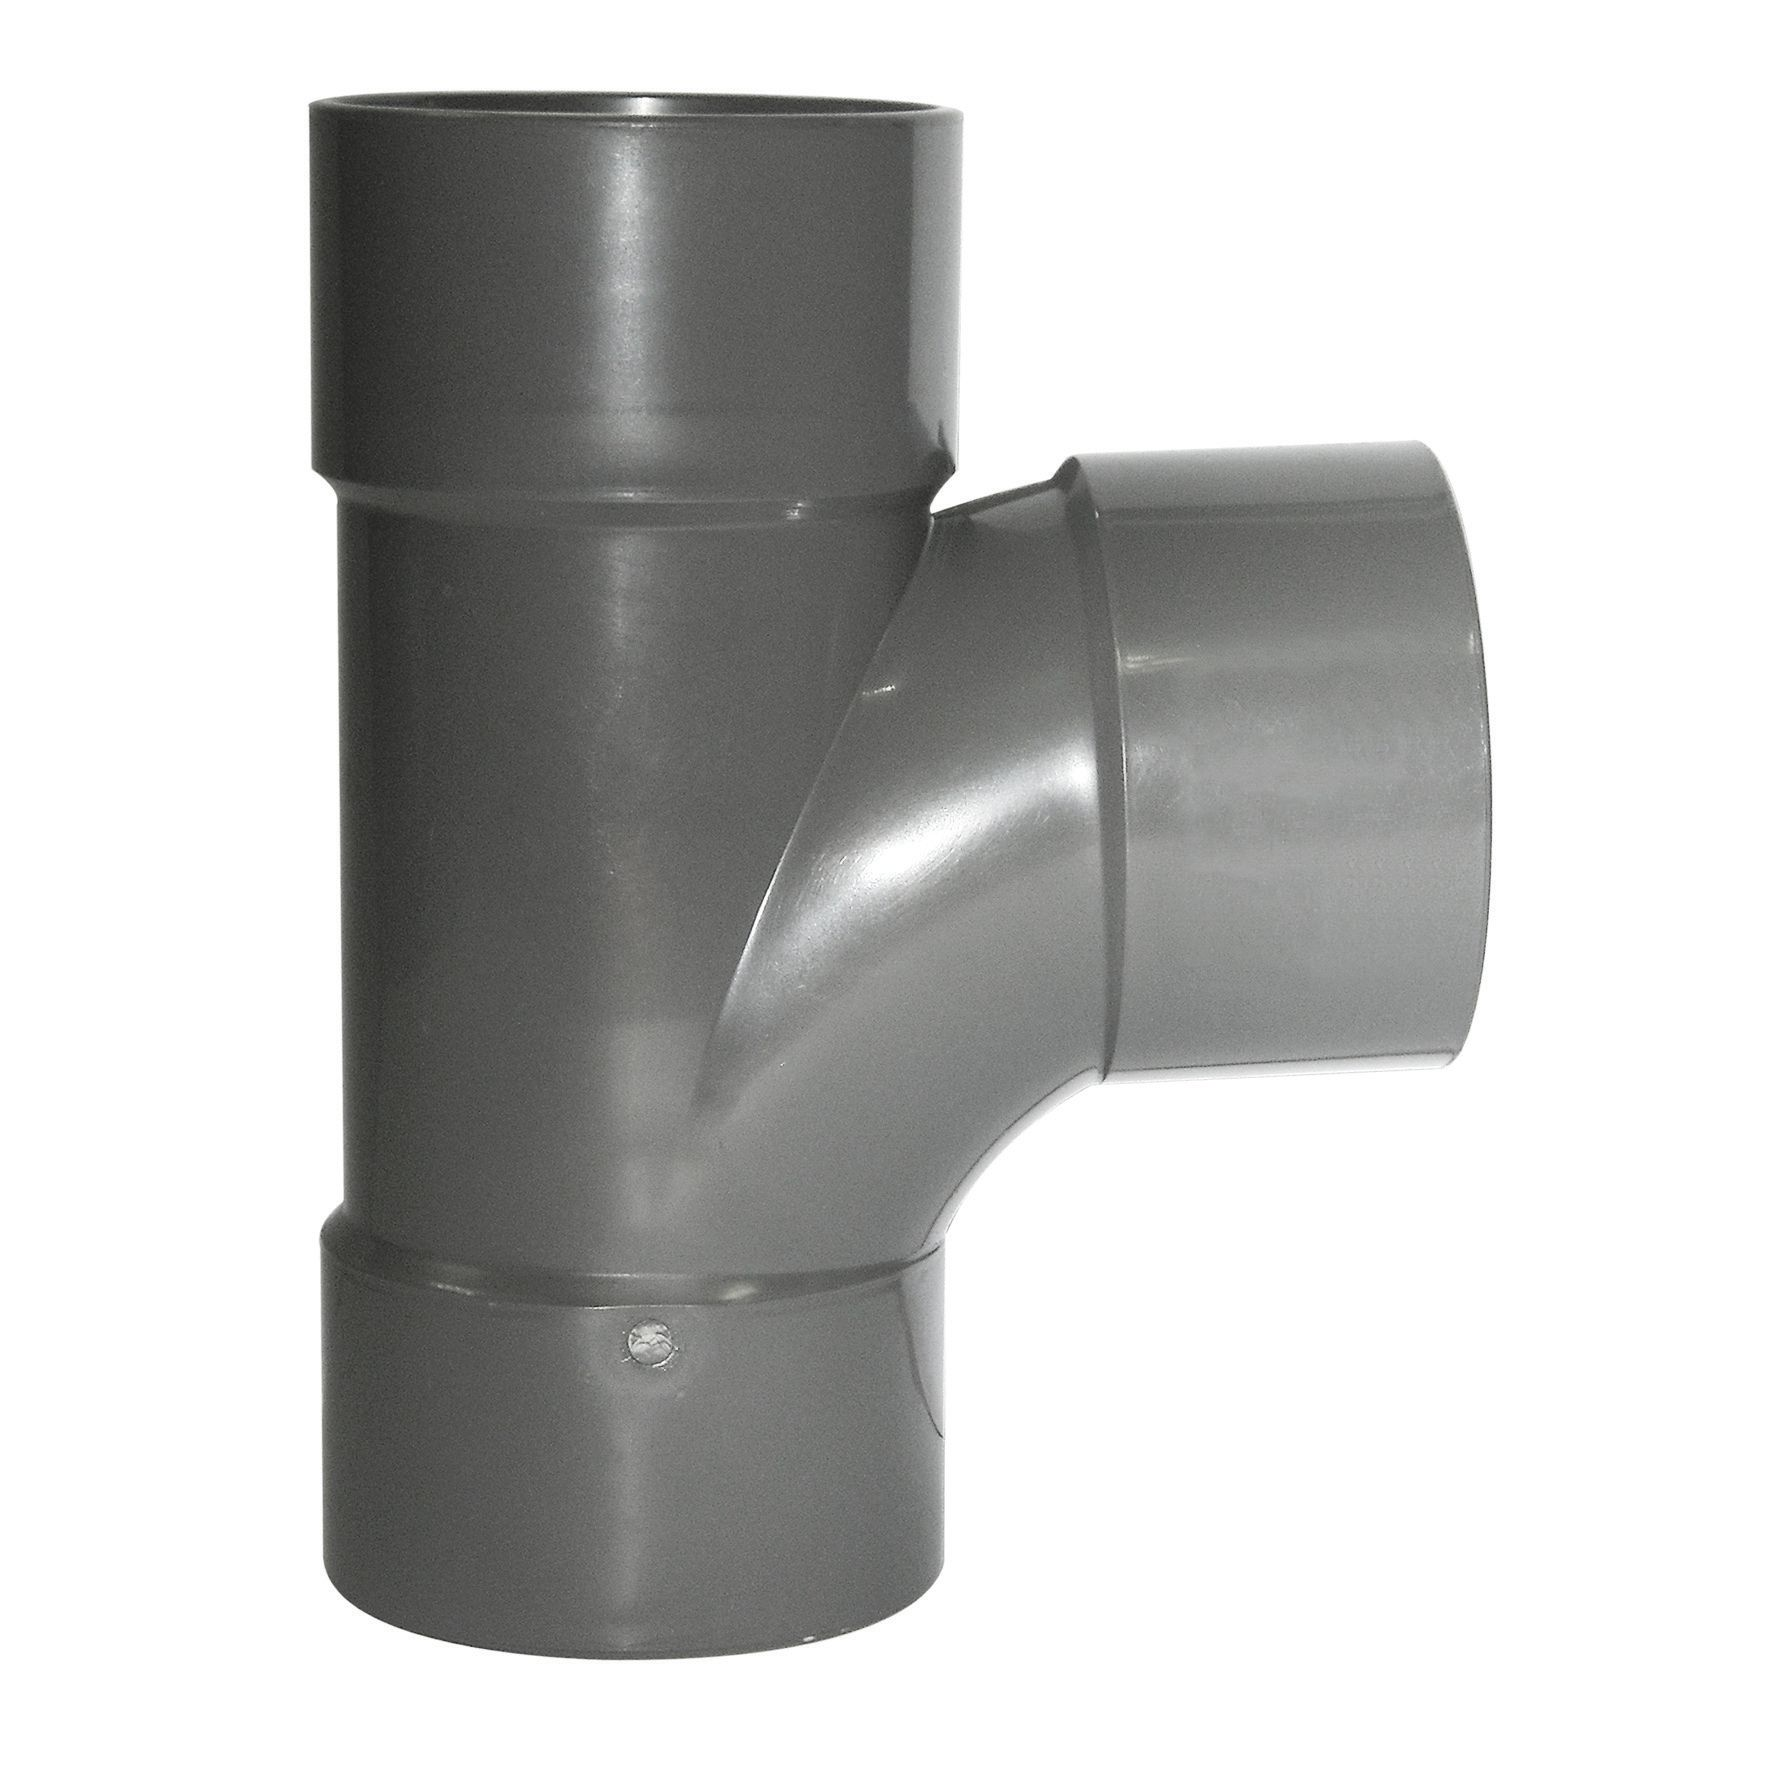 Solvent Weld Pipes & Fittings